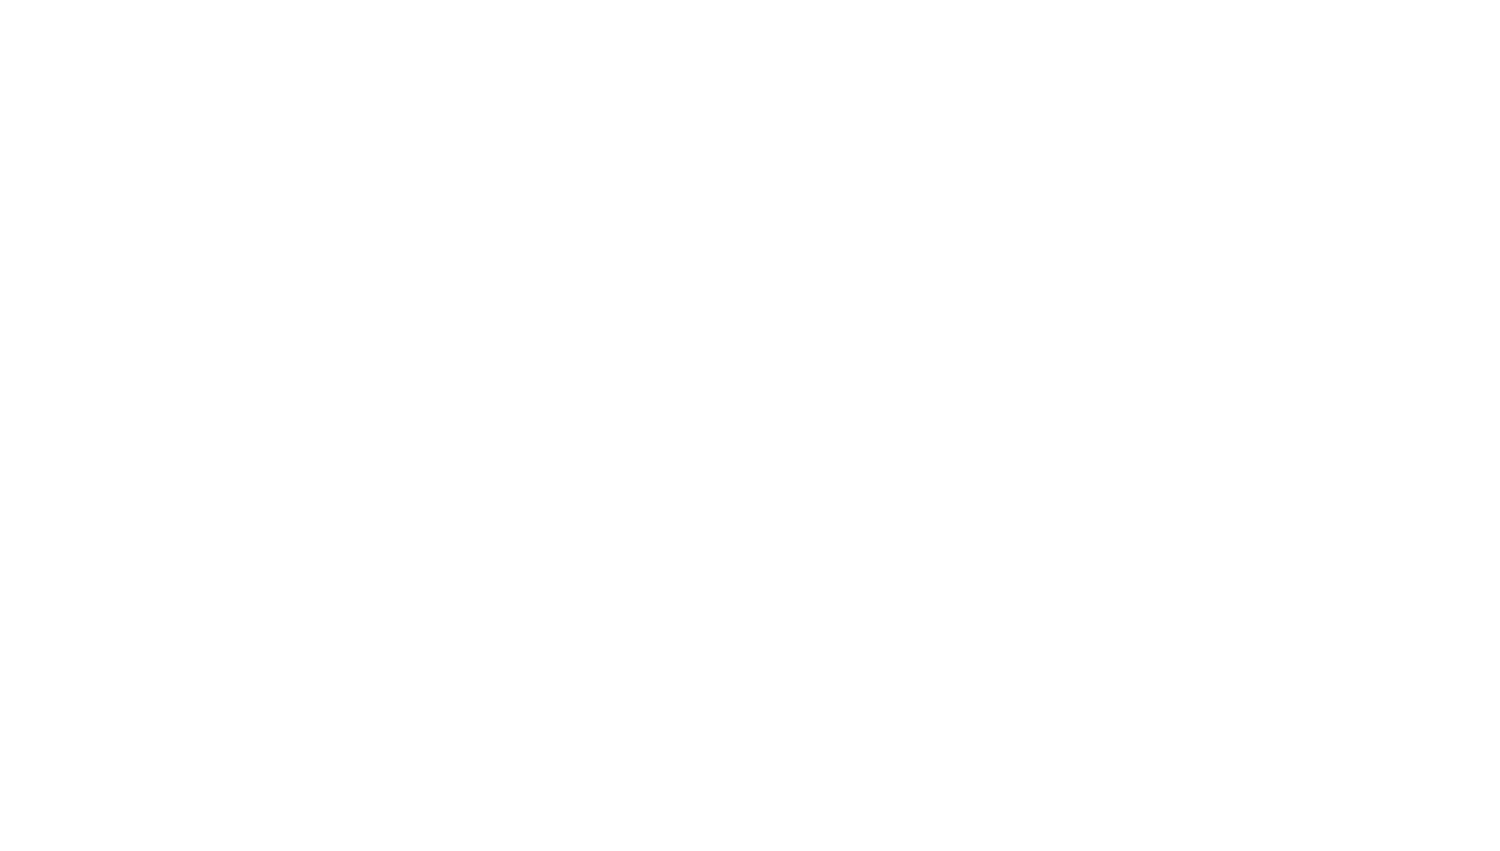 Leanne Hymes Photography